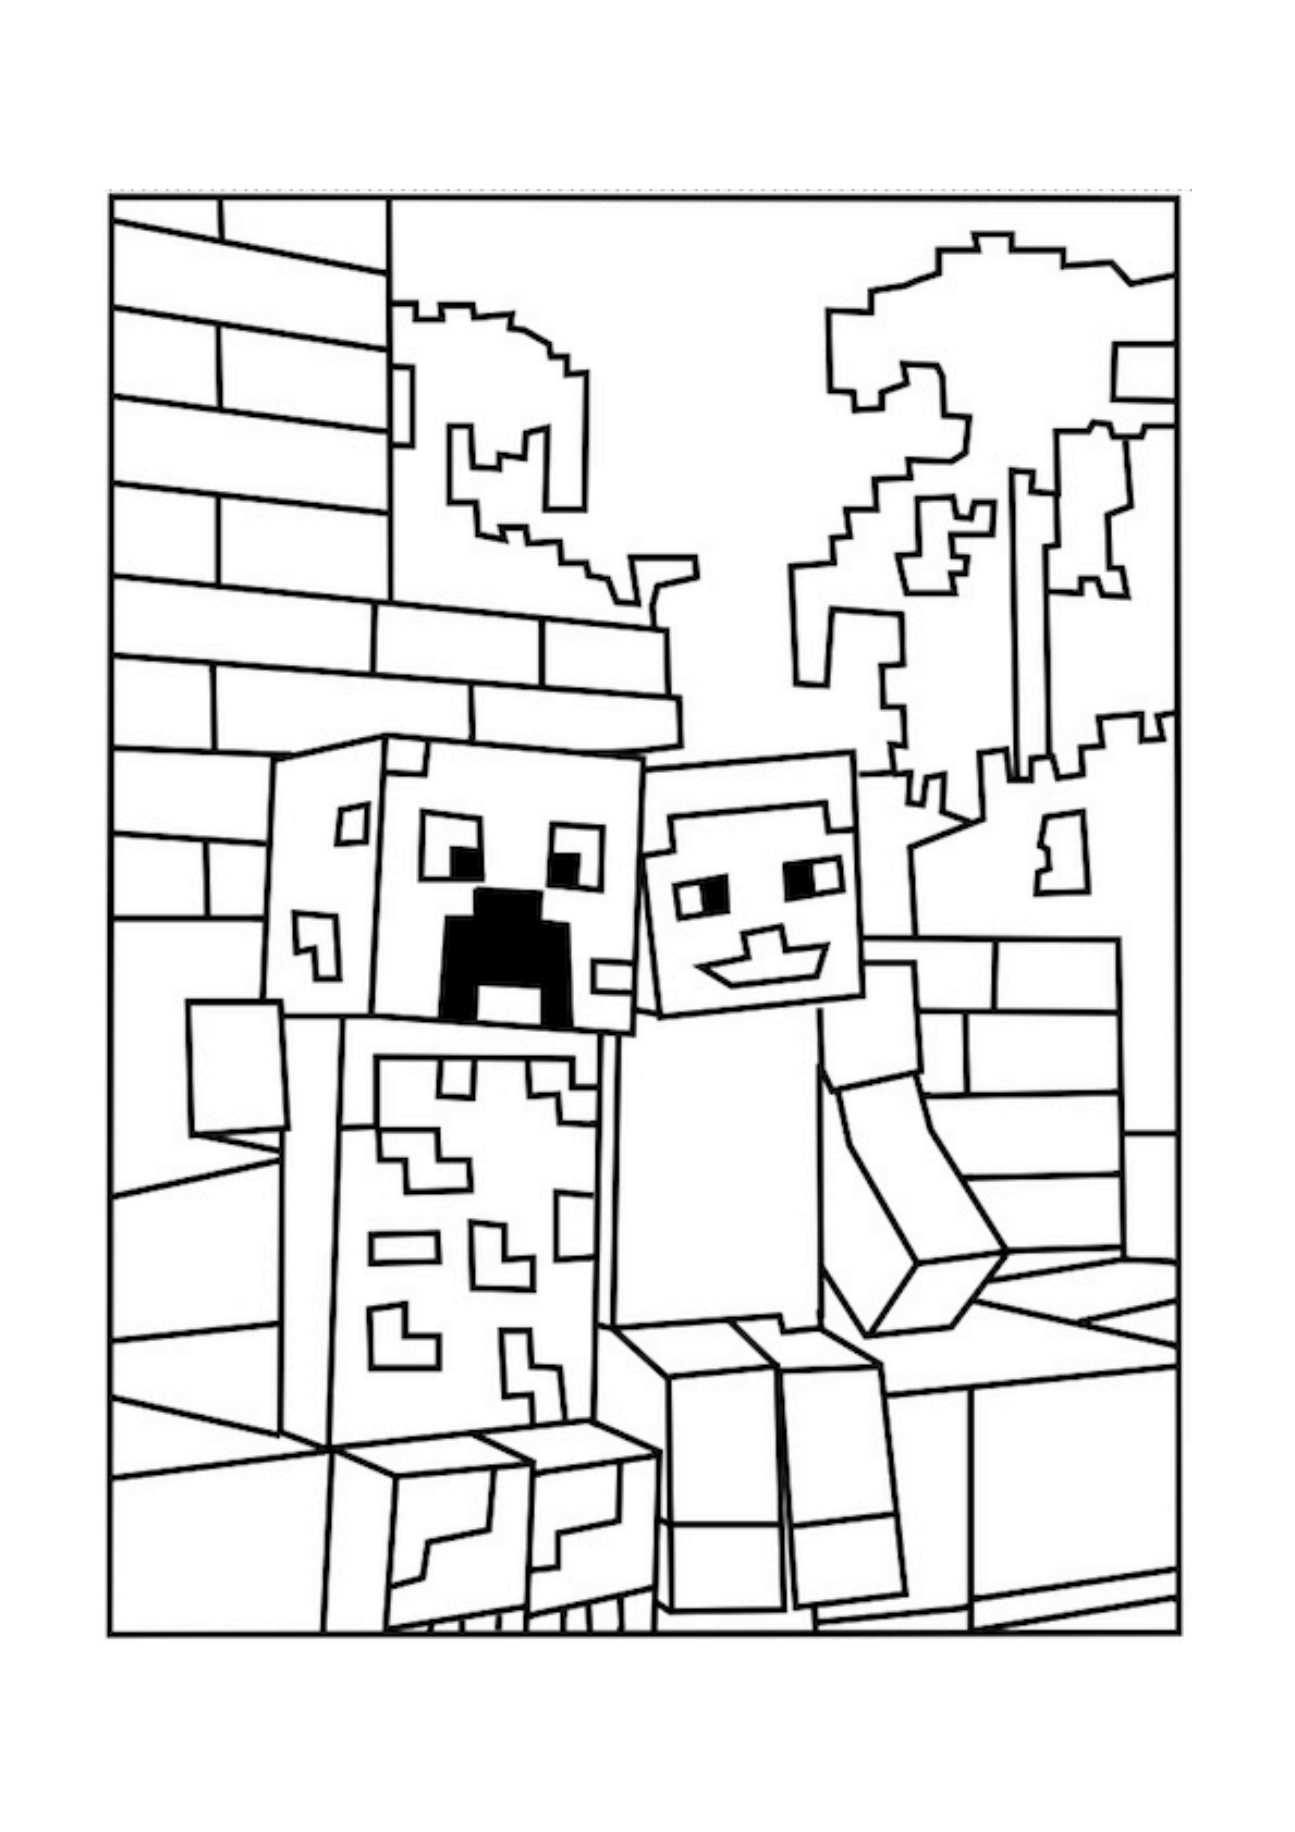 minecraft iron golem coloring pages minecraft rail minecraft coloring pages for children coloring pages minecraft iron golem